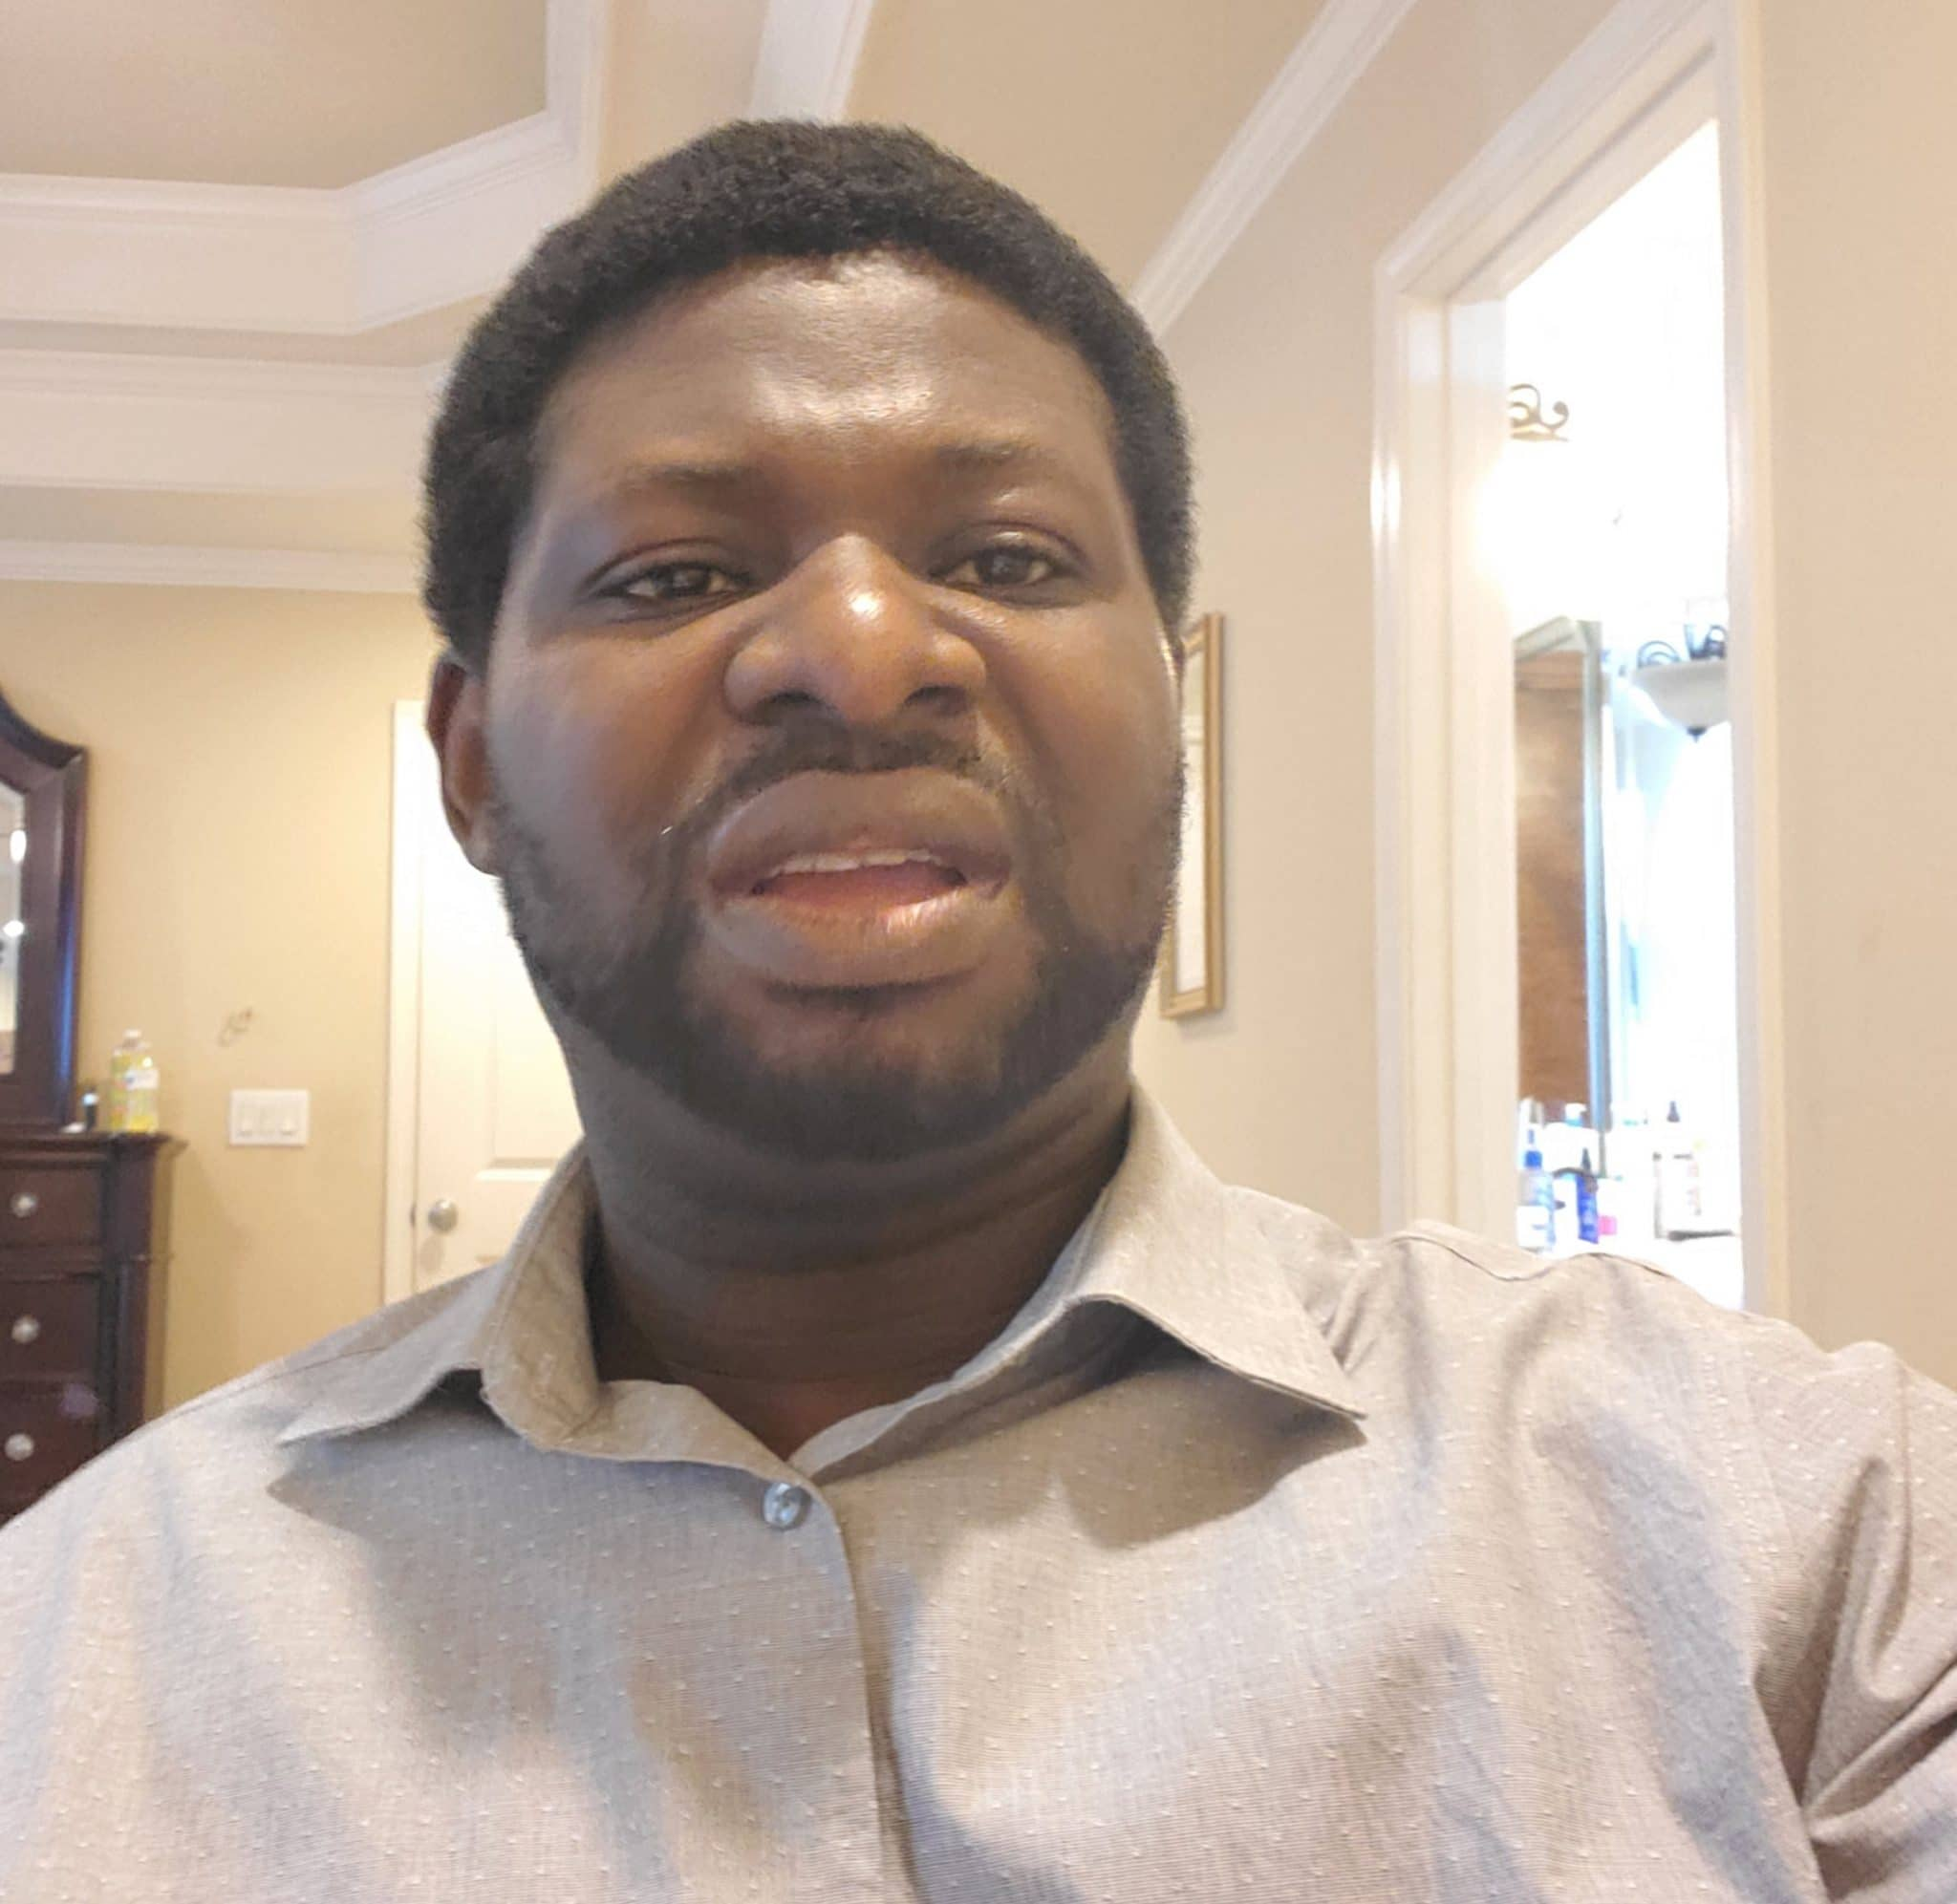 Nigeria news : #EndSWAT I warned you to resign – Pastor Giwa blasts Buhari, Osinbajo